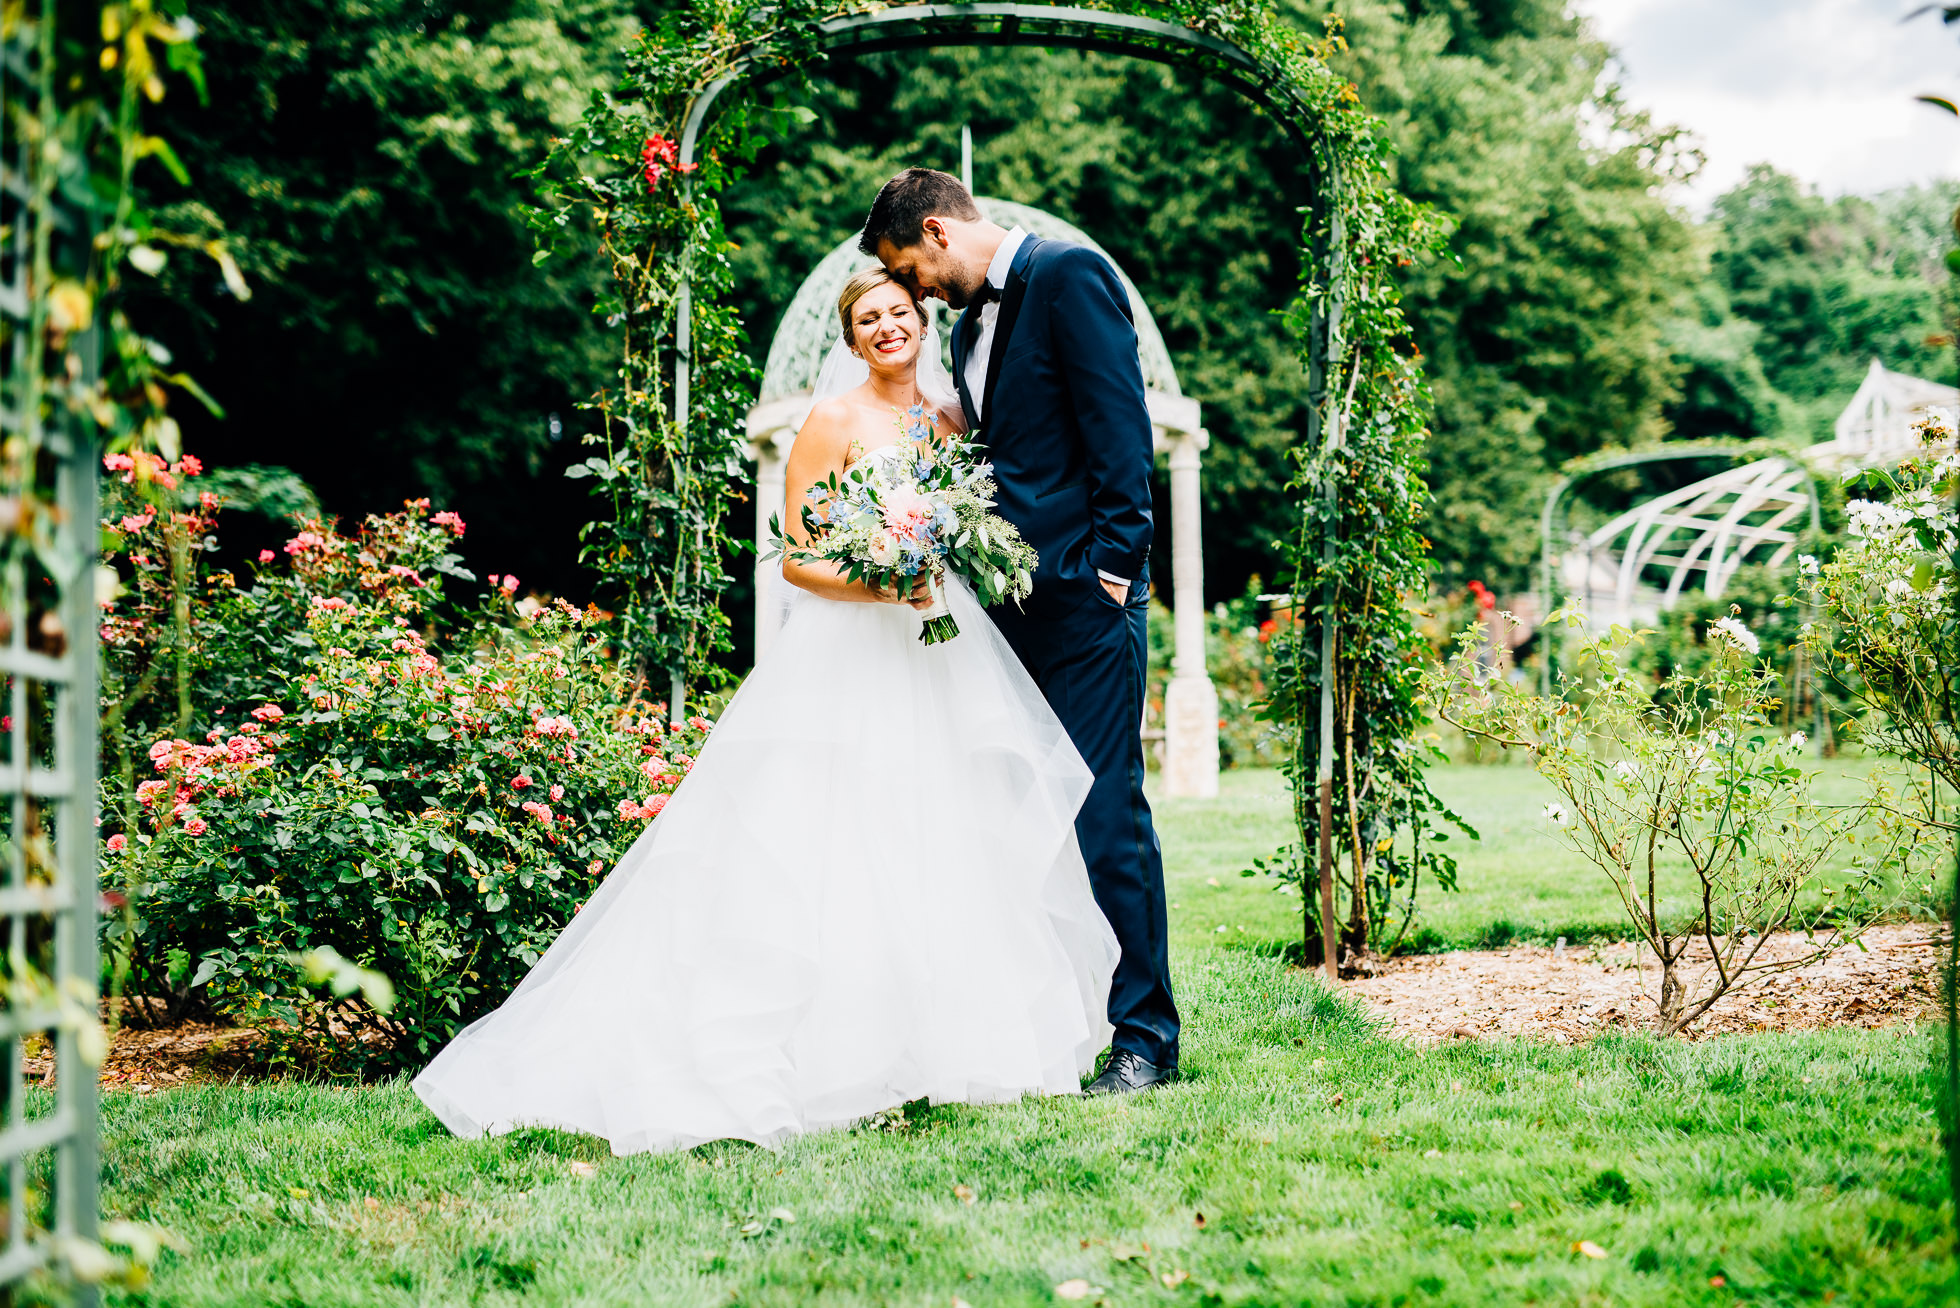 bride & groom portraits at lyndhurst castle rose garden photographed by traverse the tides